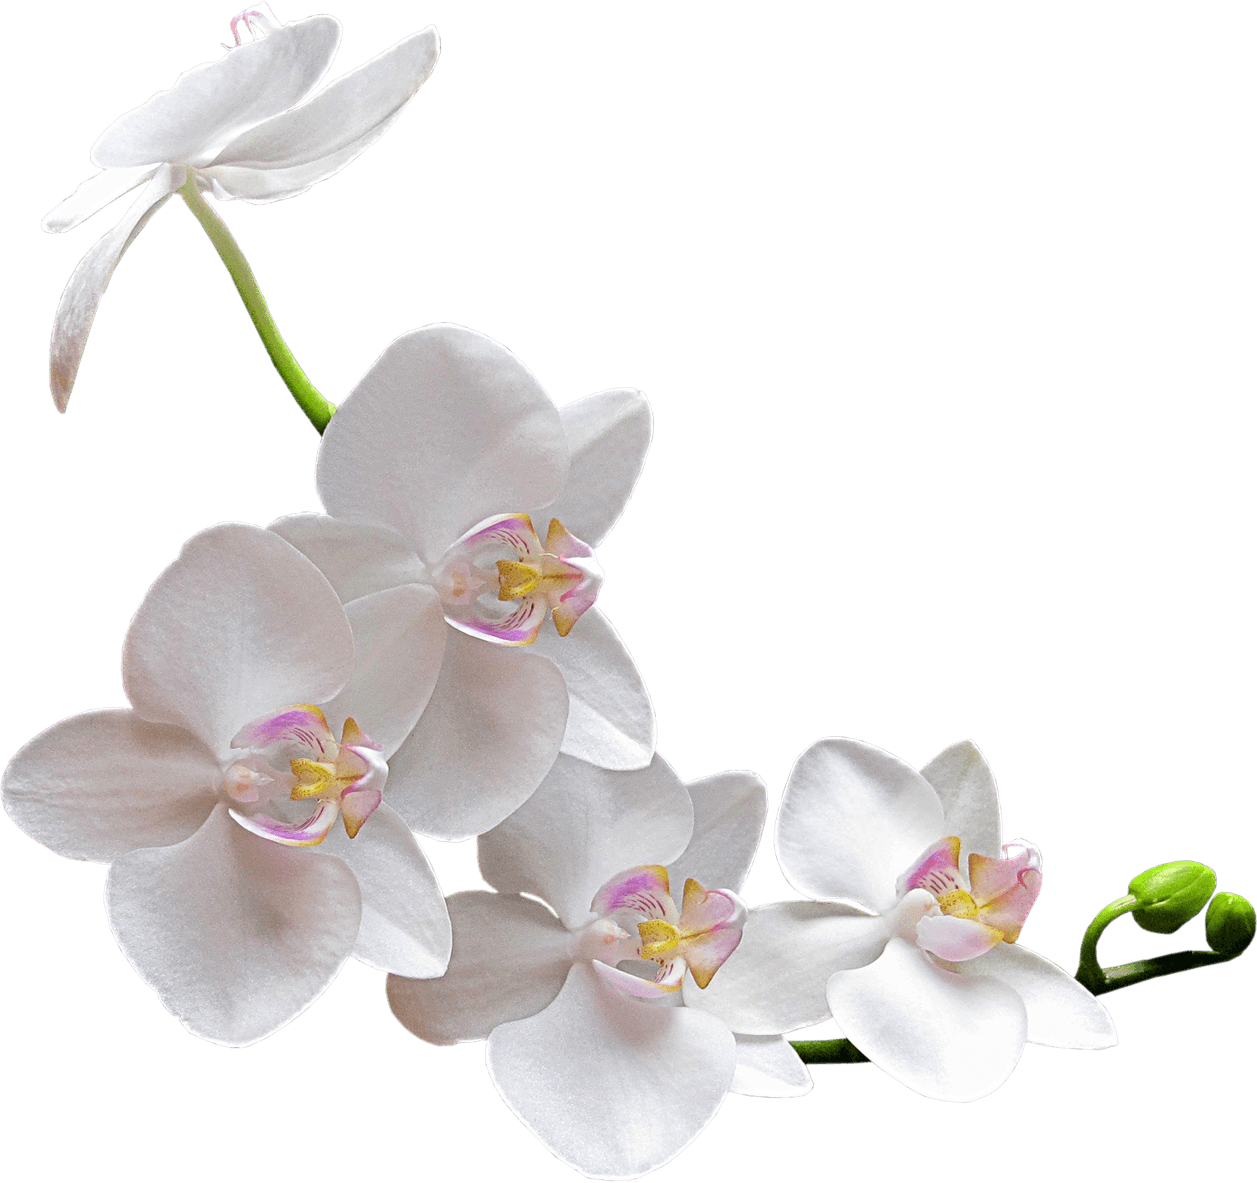 Floral clipart orchid. Pin by spring studios